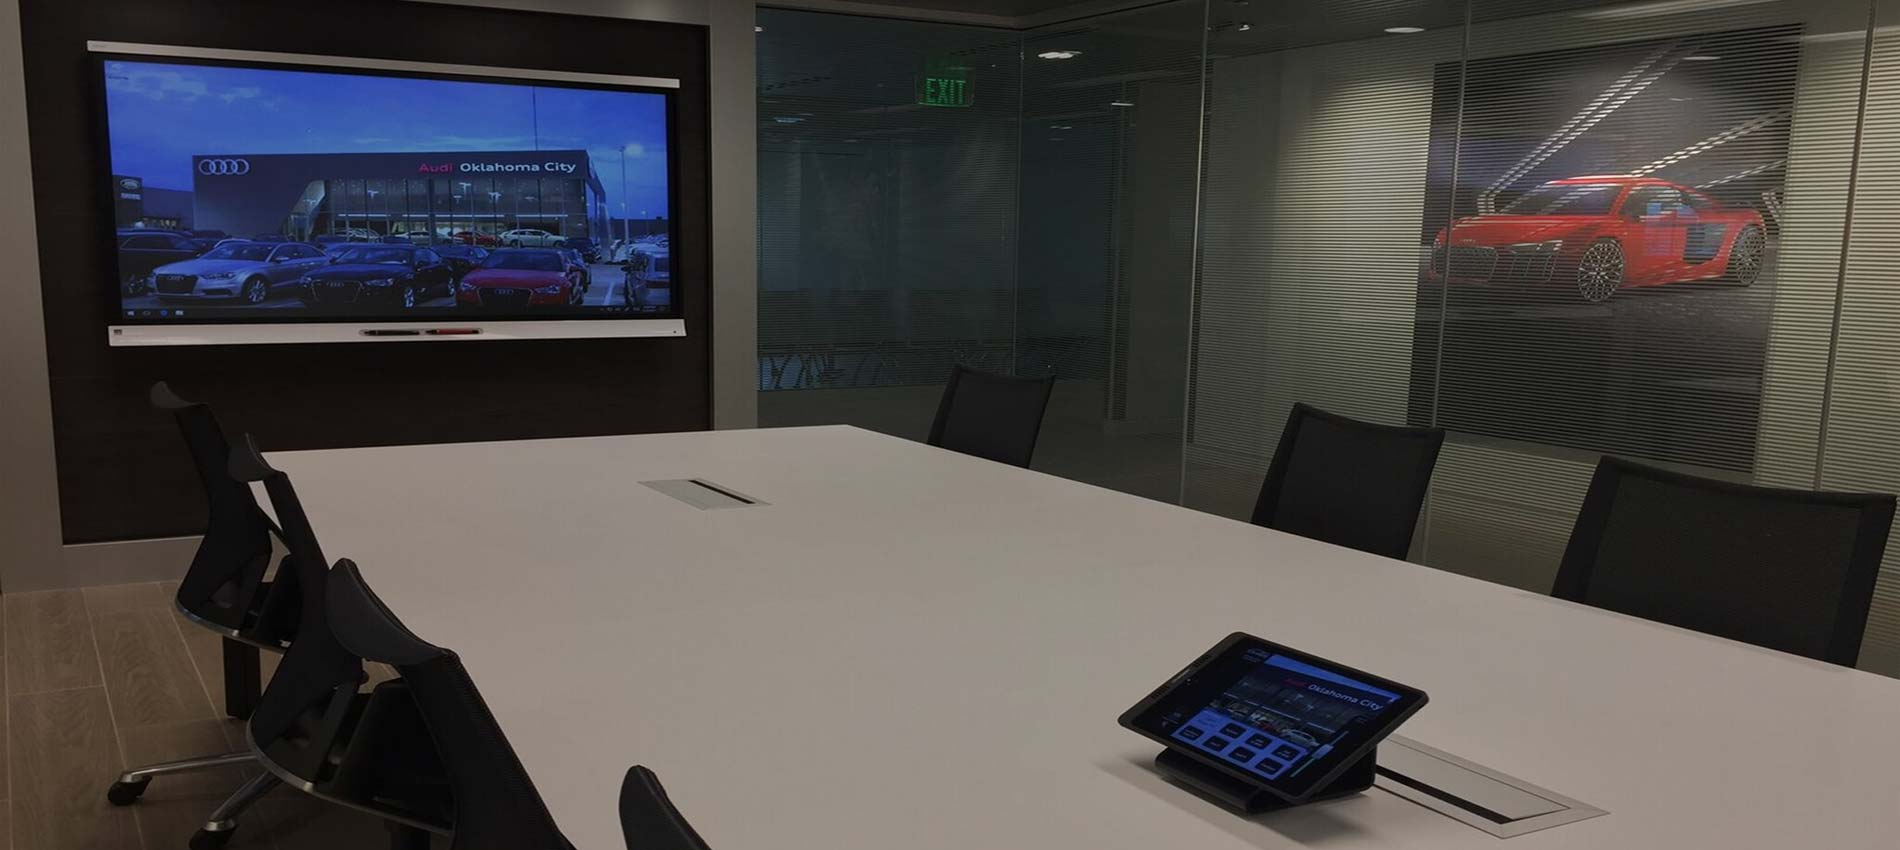 Audio, video and smart systems for corporate Oklahoma City, Edmond and Tulsa